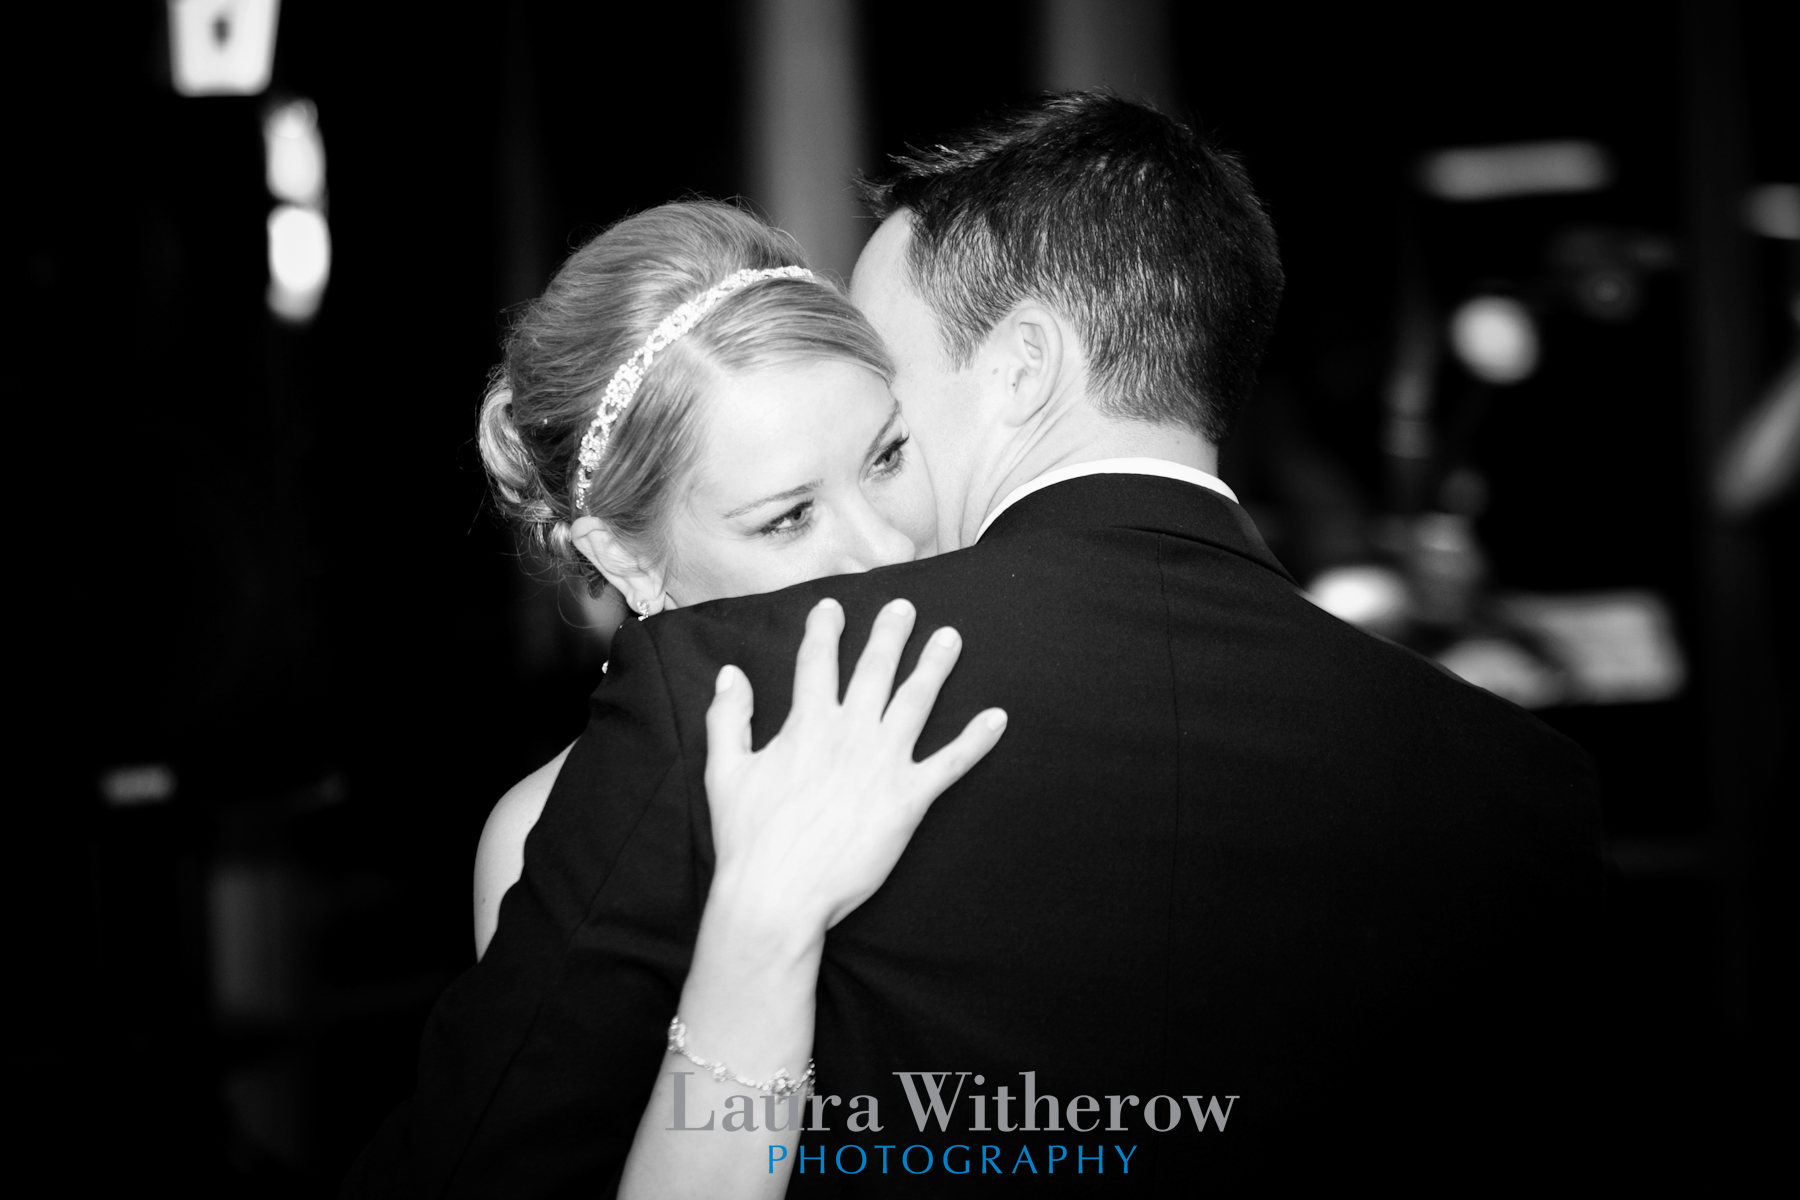 hyatt-lodge-chicago-wedding-photography.jpg